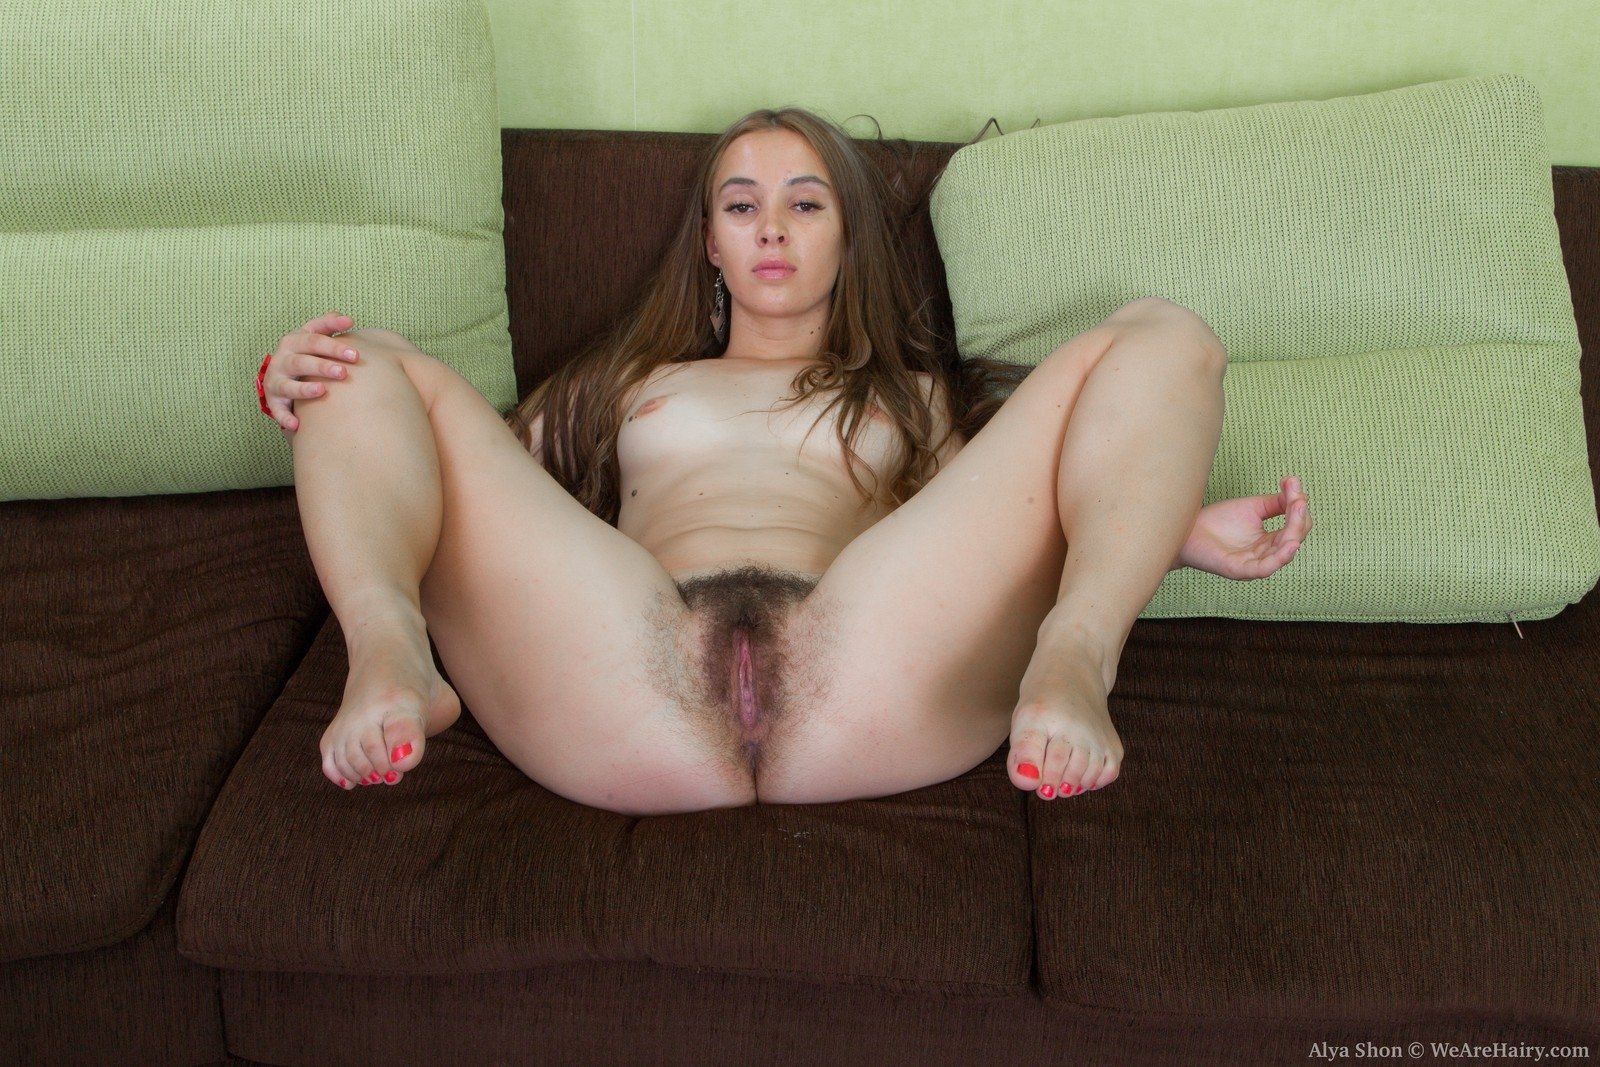 simone peach double penetration